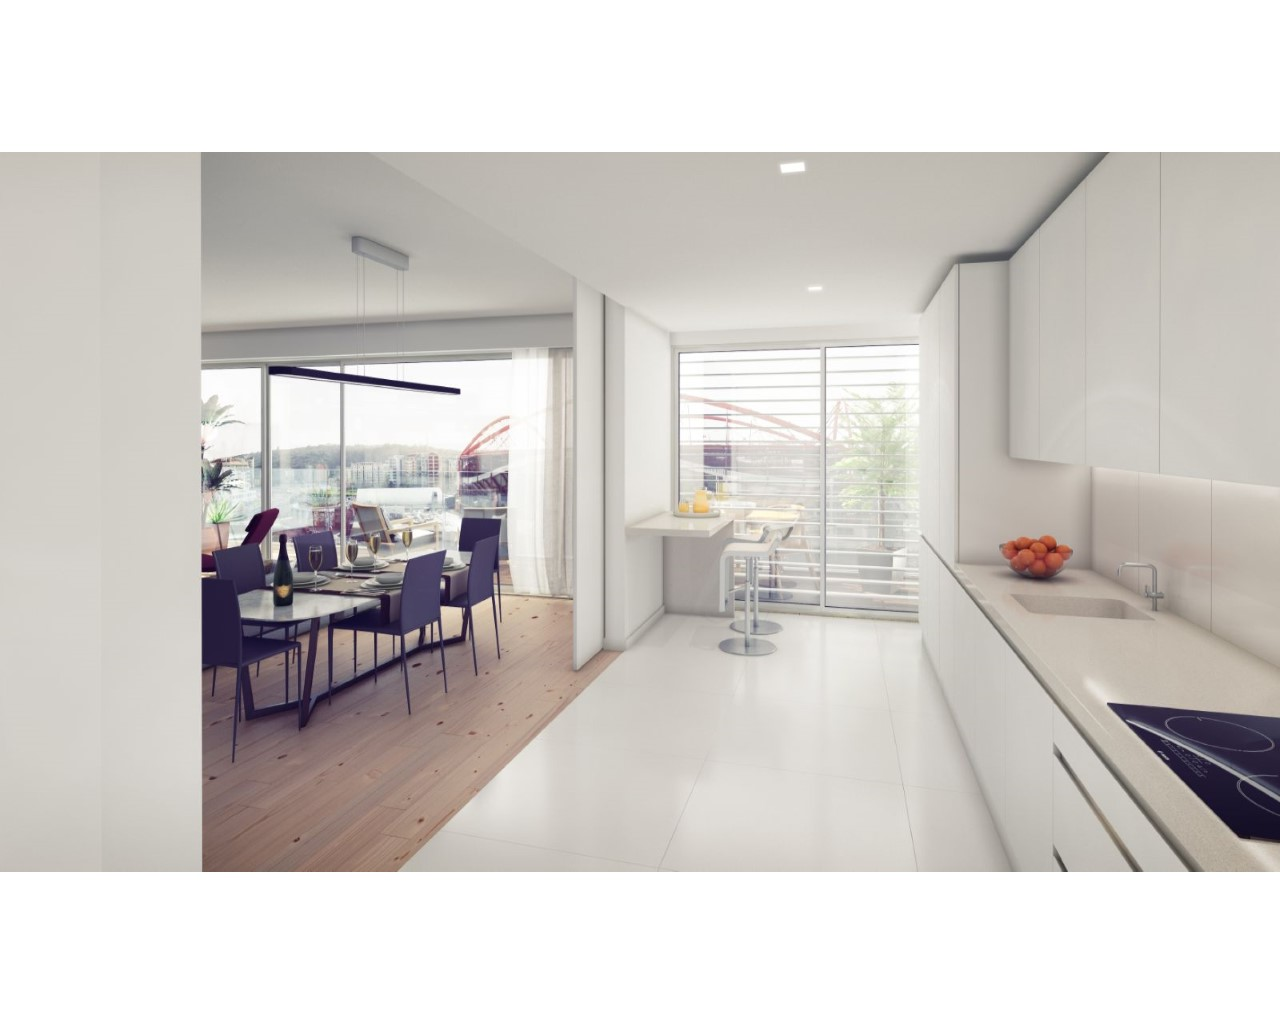 Kitchen sliding doors - open